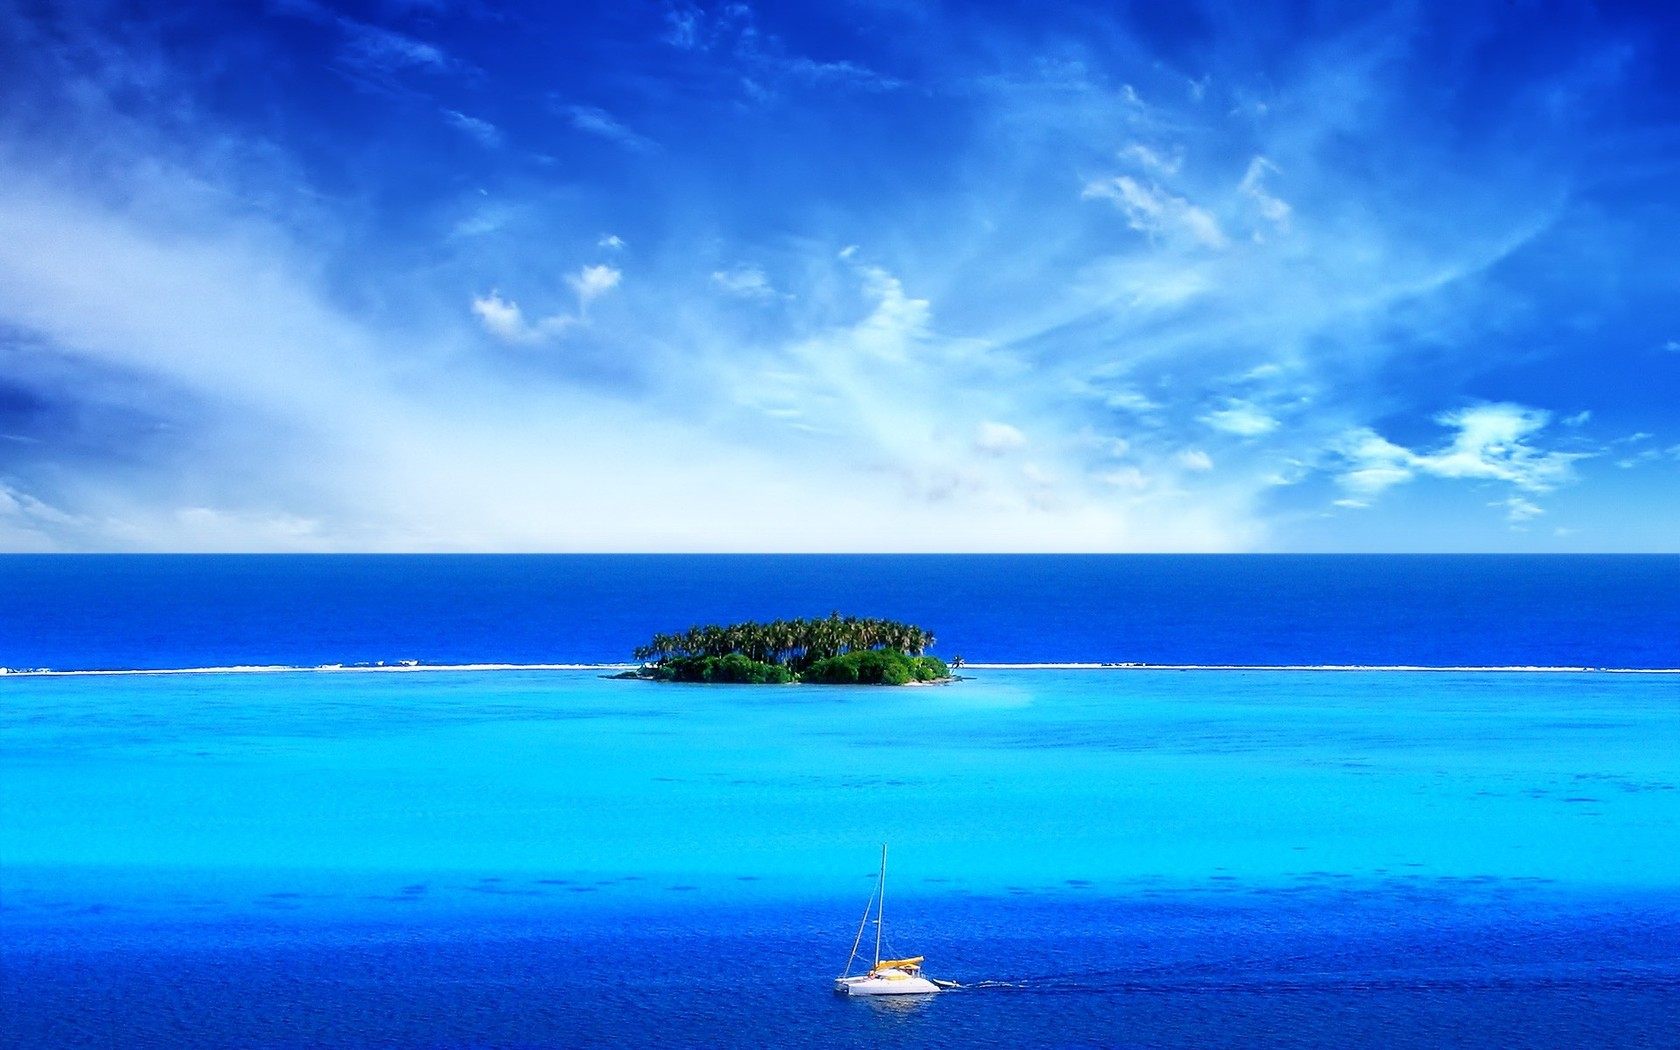 Hd Tropical Island Beach Paradise Wallpapers And Backgrounds: WallpaperSafari